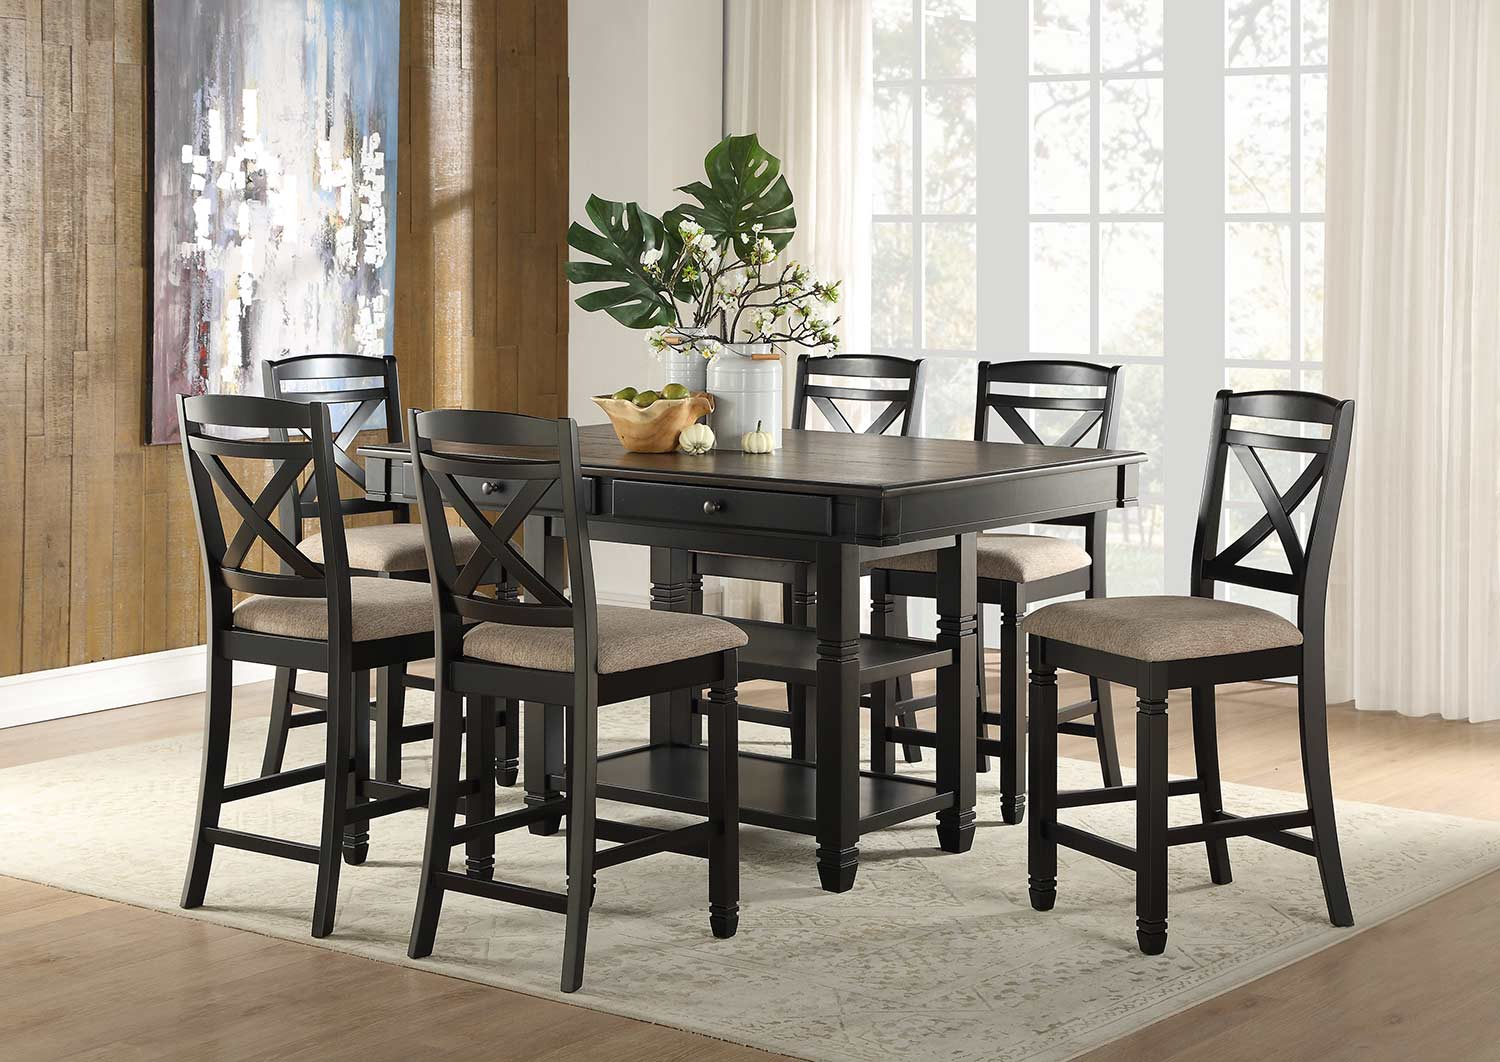 Homelegance Baywater Counter Height Dining Set - Black -Natural